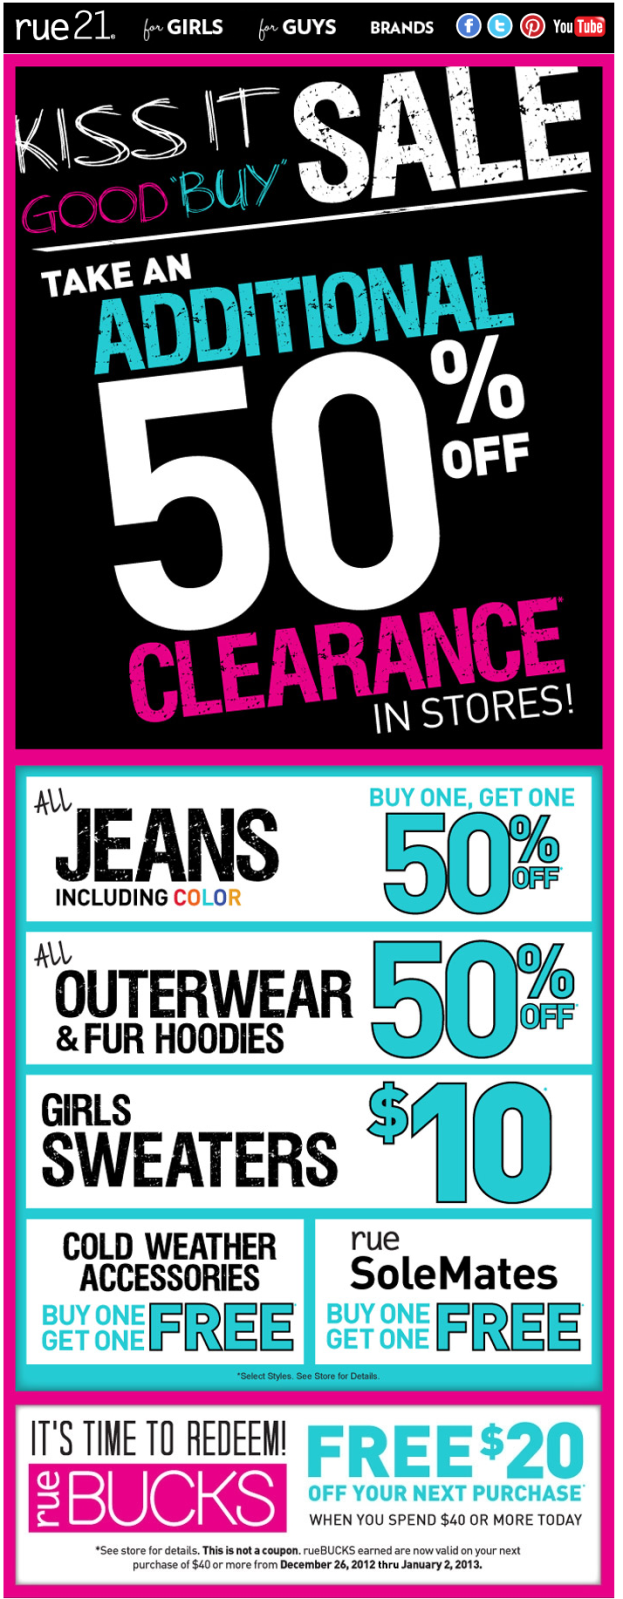 image regarding Rue 21 Coupons Printable named Additional 50% off clearance products and solutions at rue21 coupon by means of The